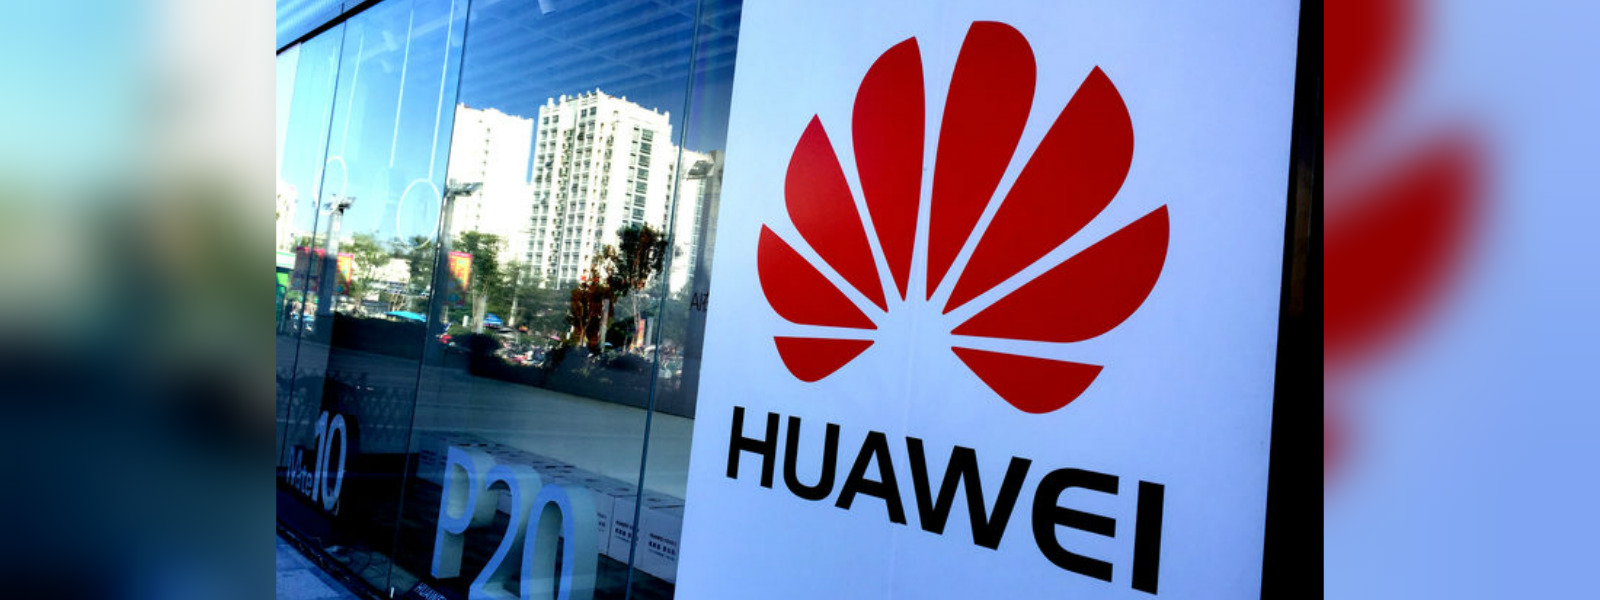 ERNW conducts a technical review of Huawei's UDG on 5G core networks